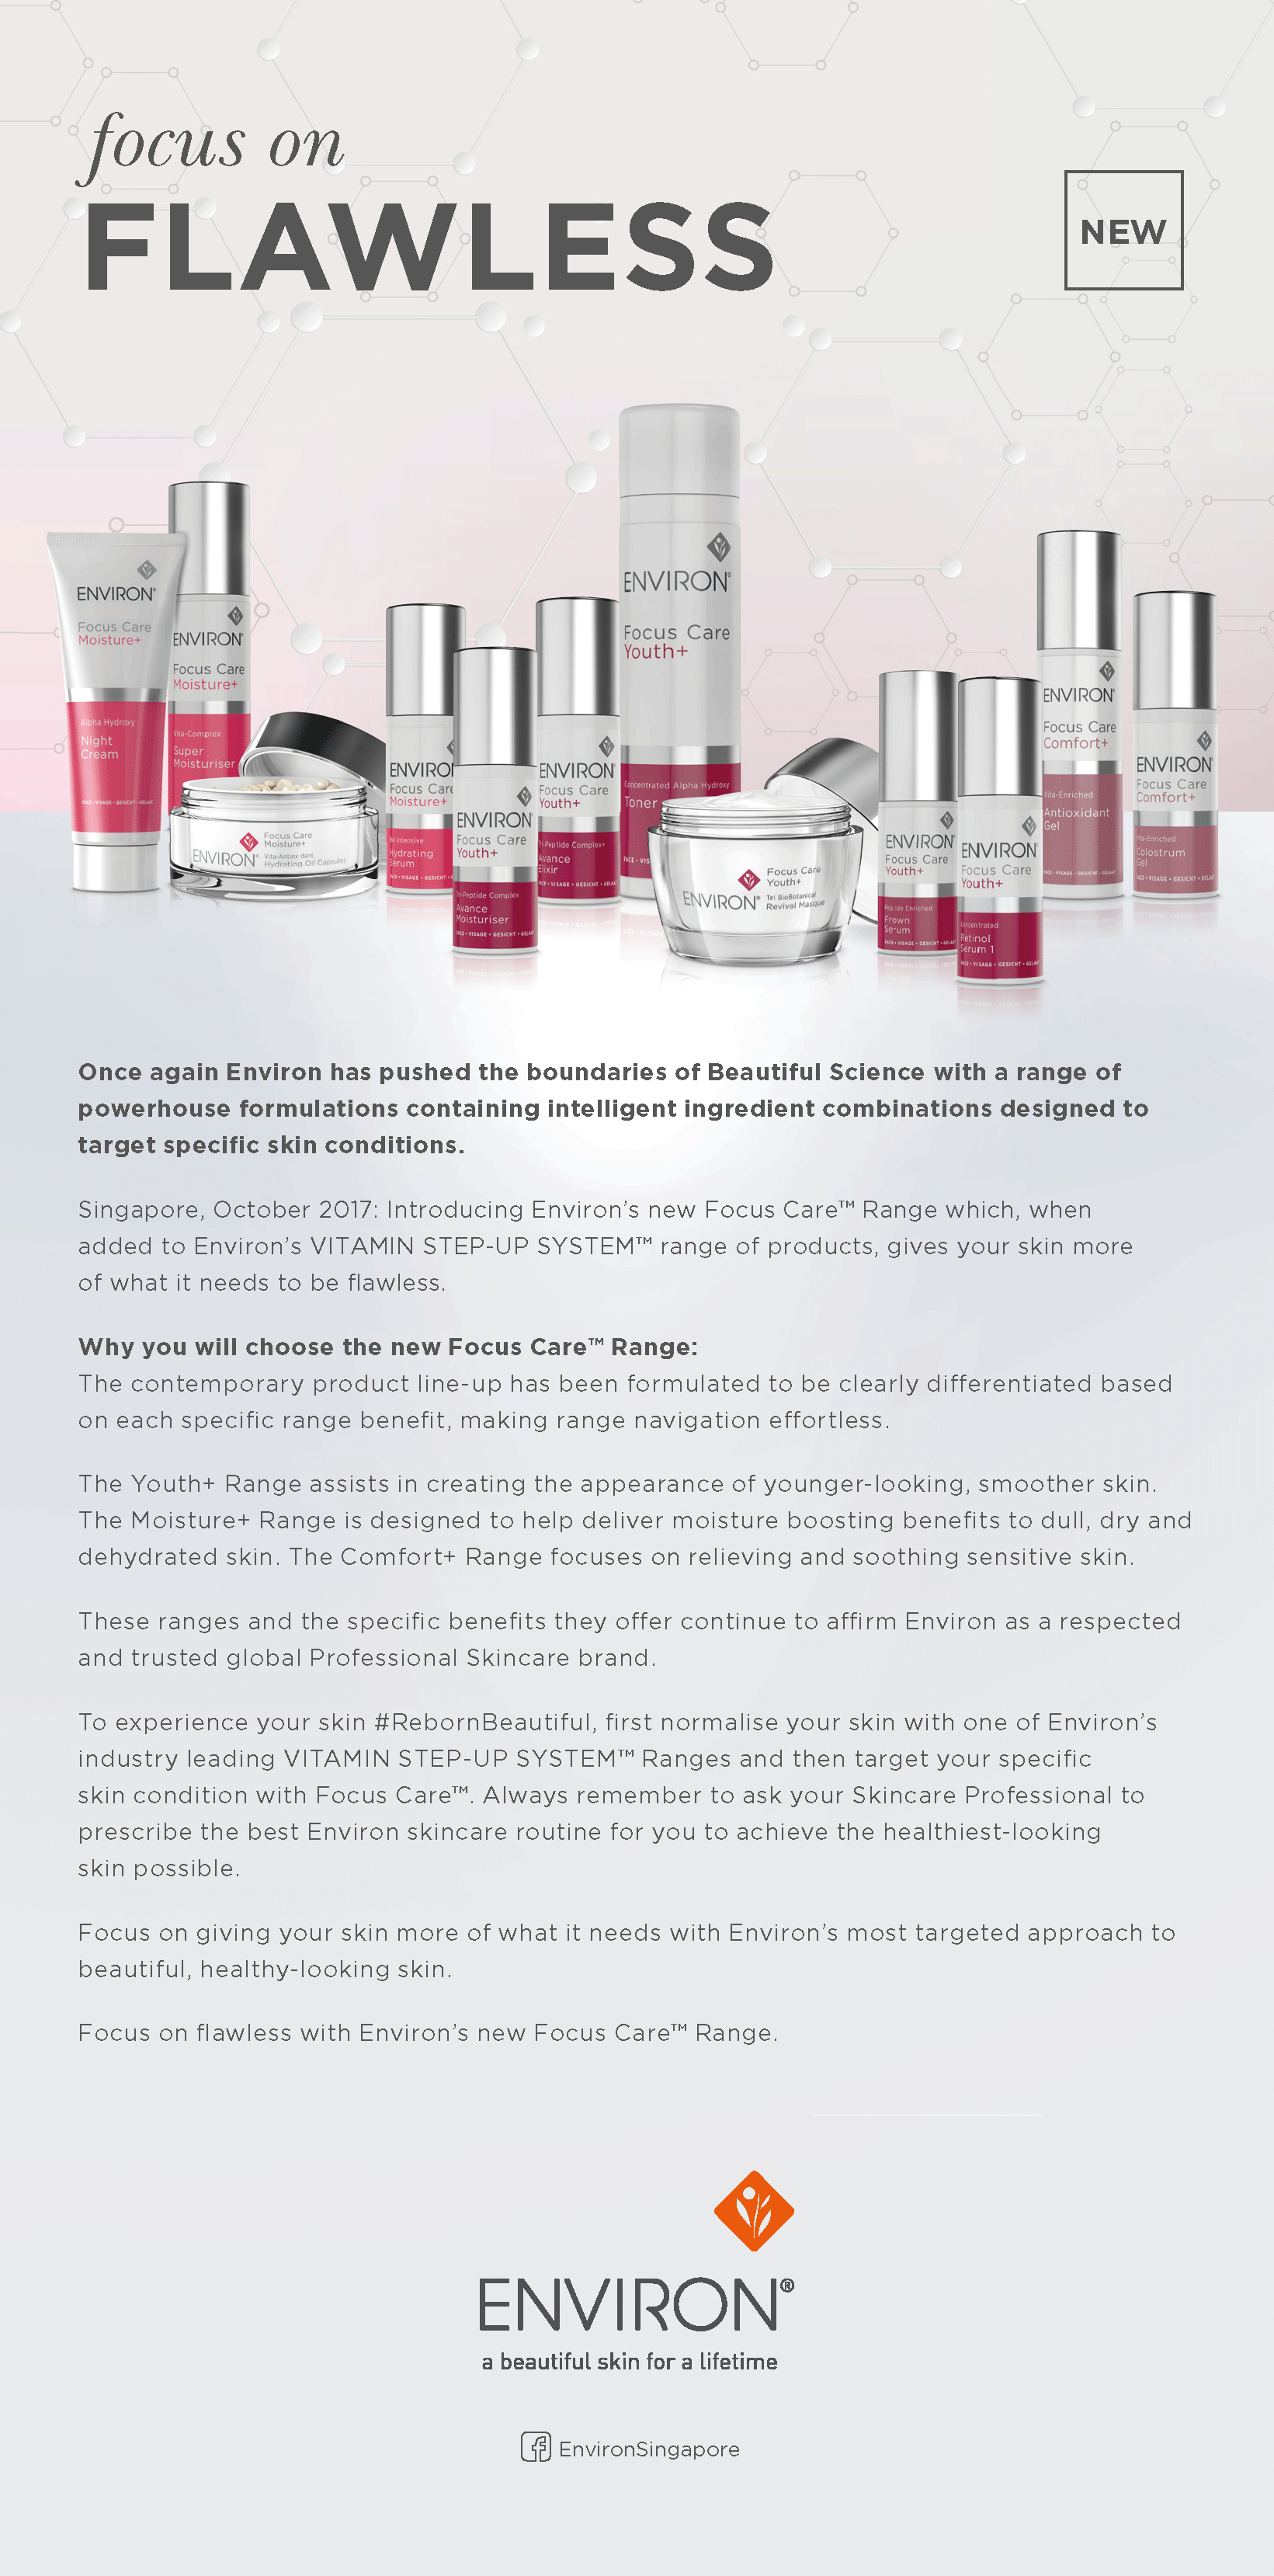 ENVIRON Focus Care Press Release